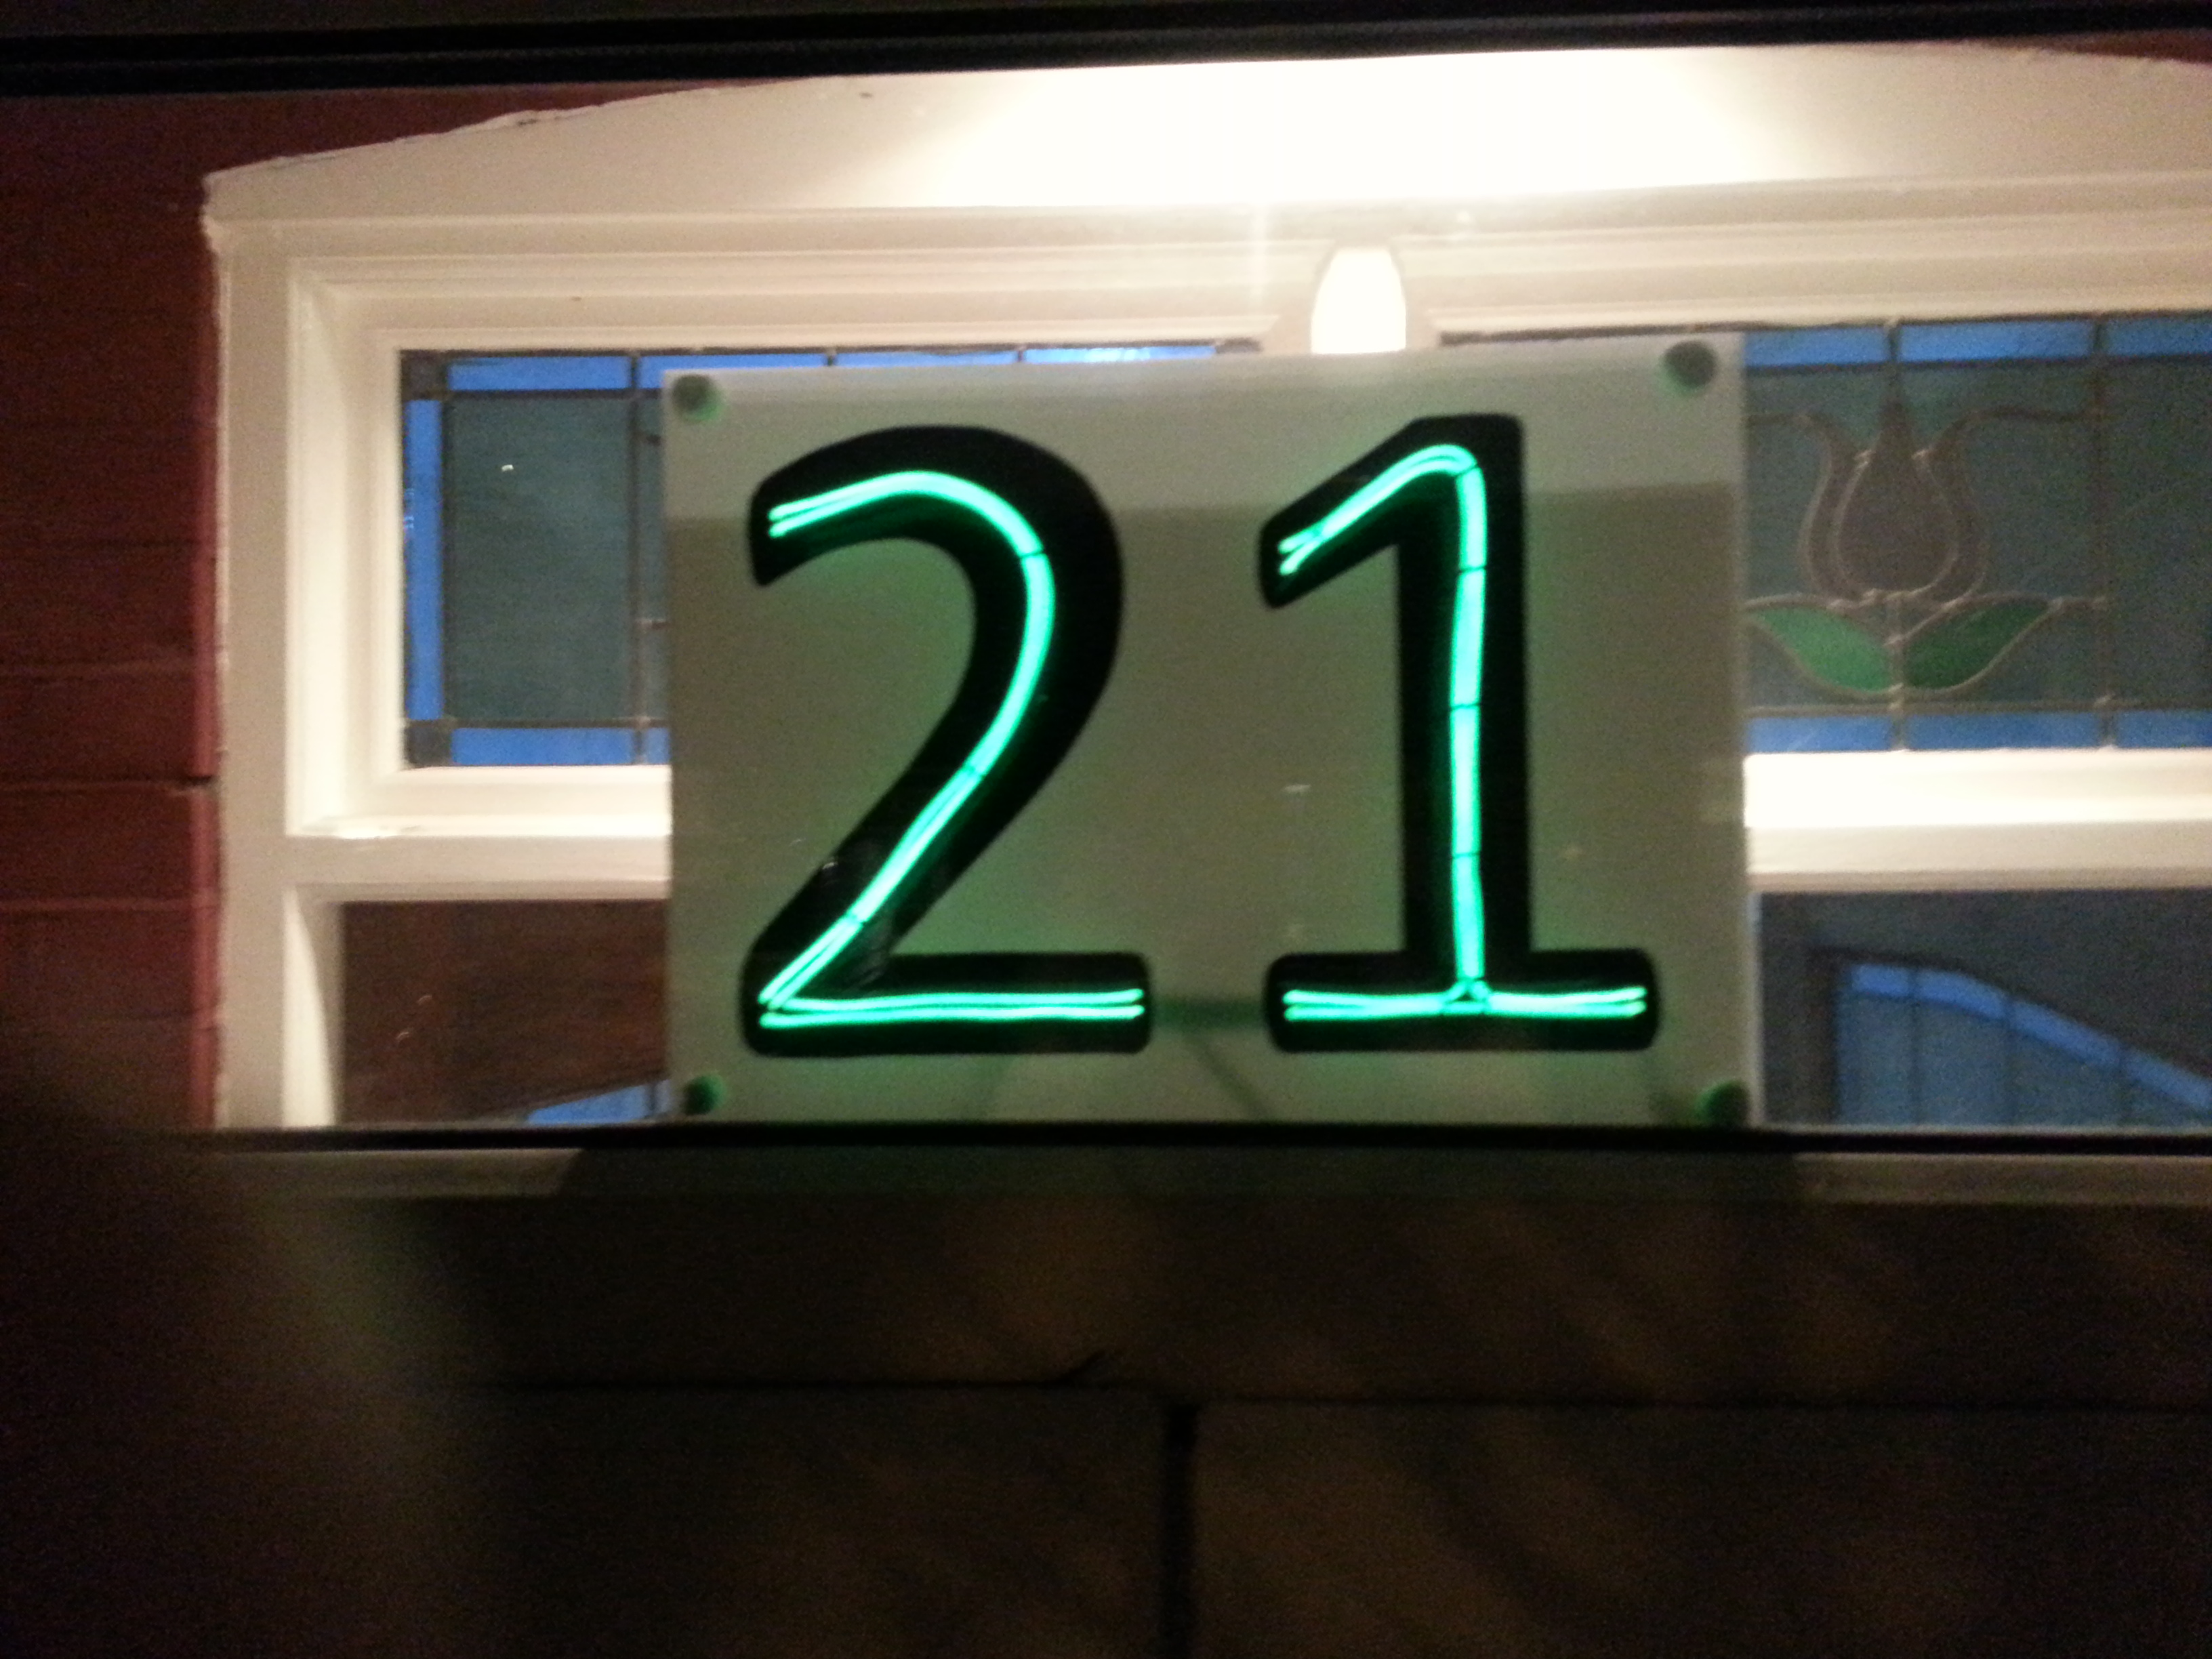 Picture of House Number in Lights.